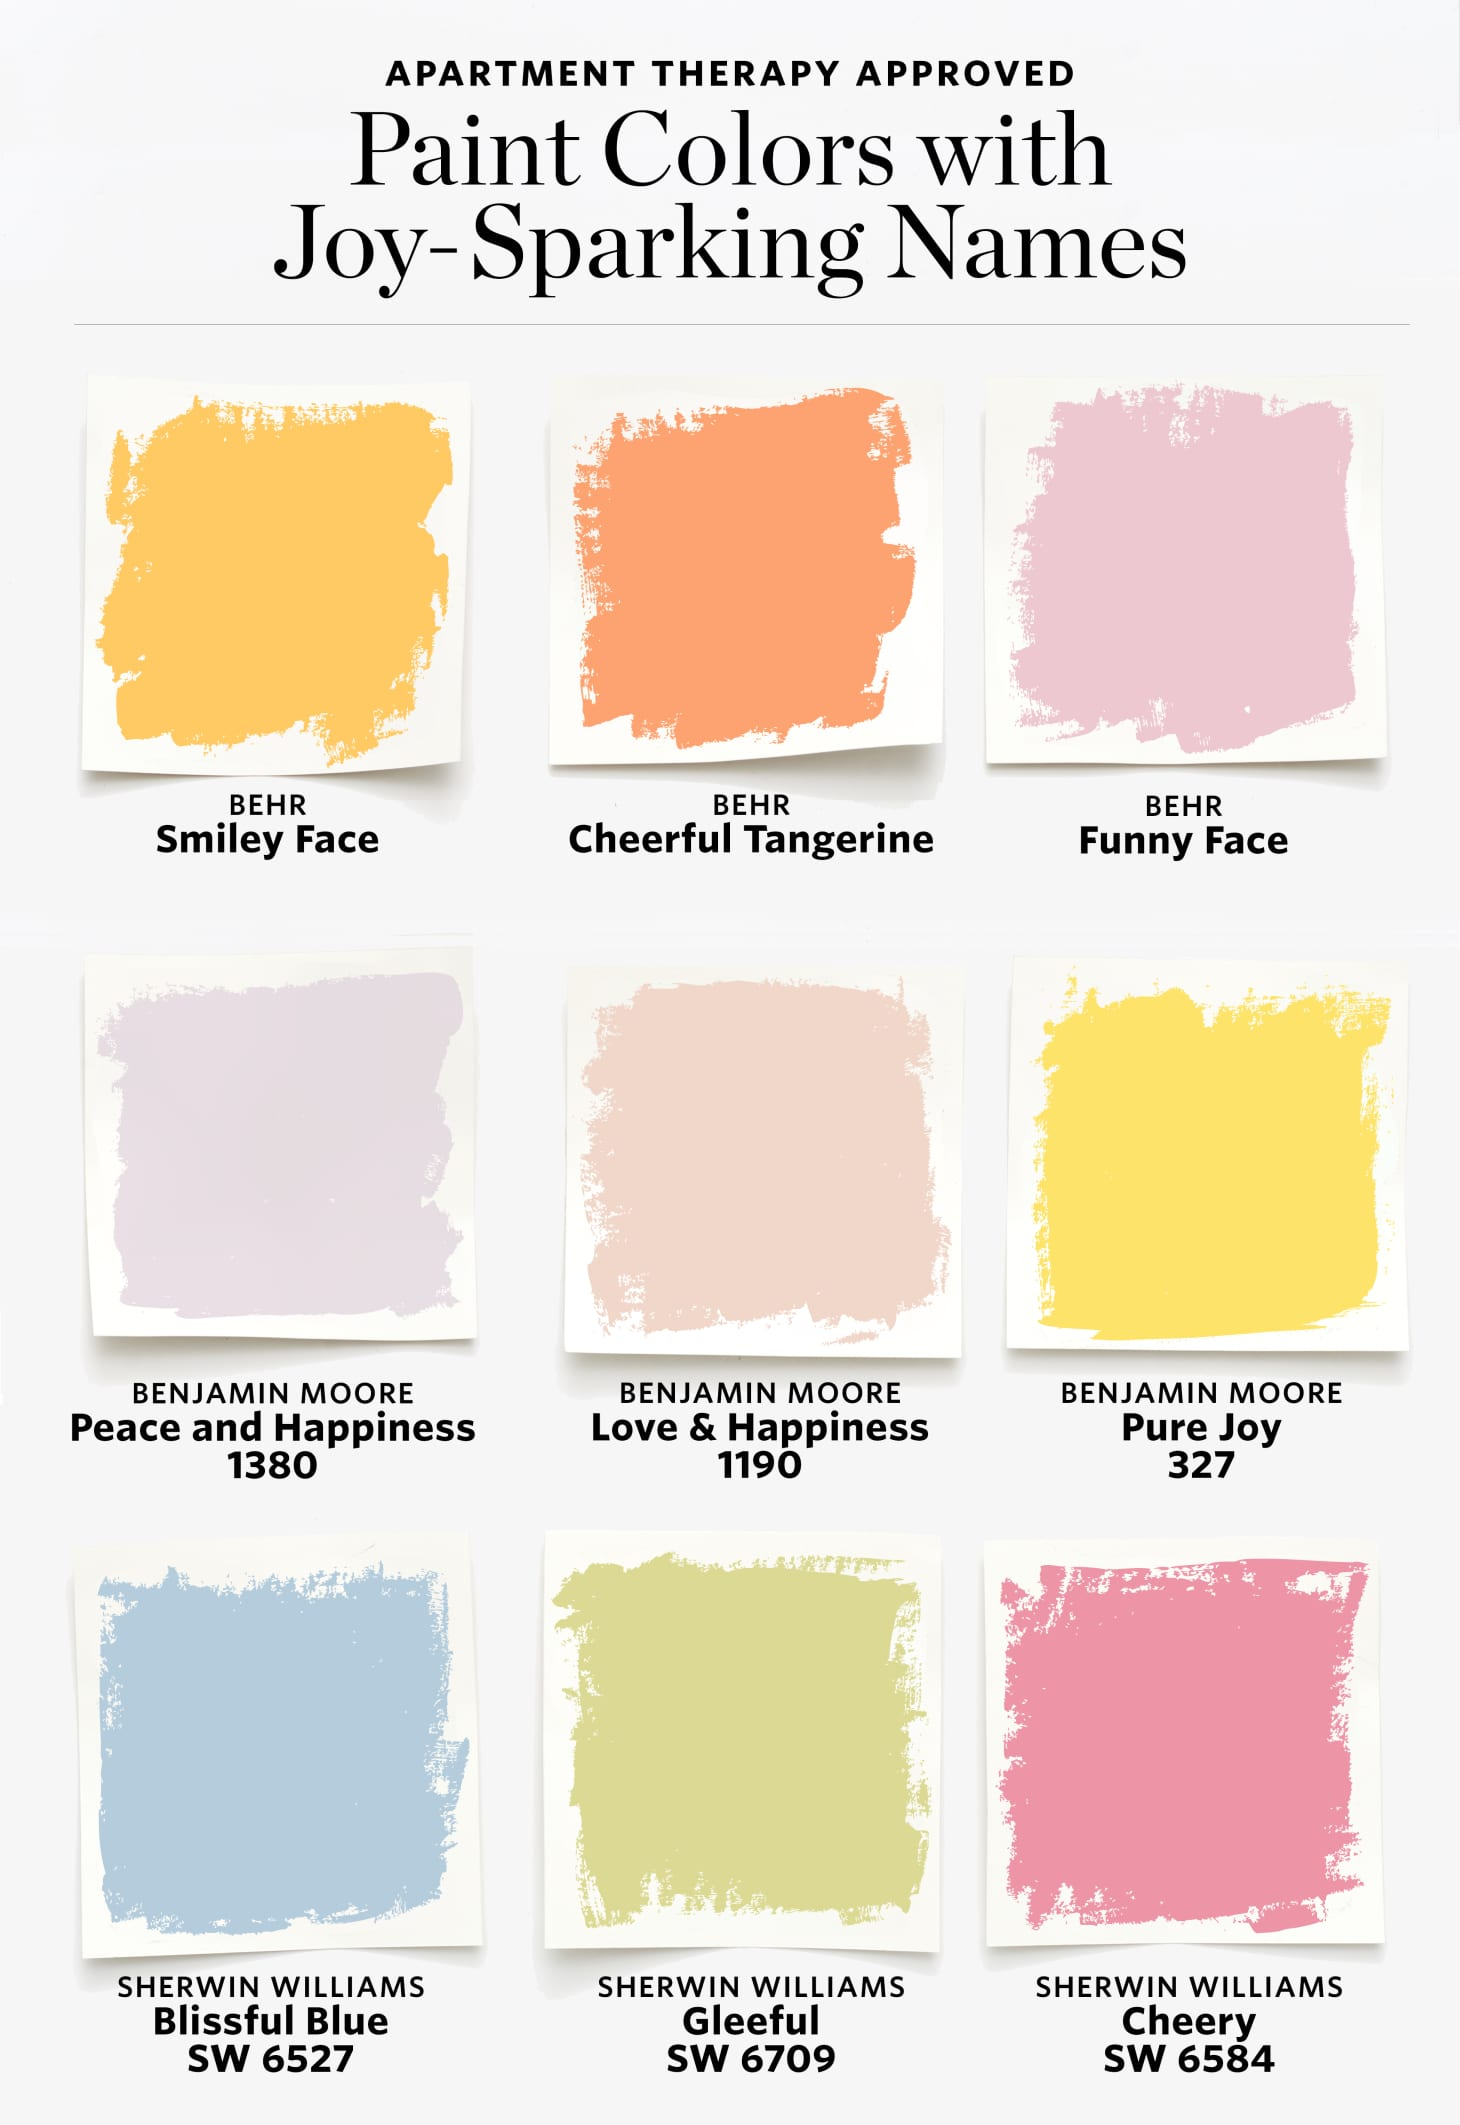 Happy Paint Colors To Spark Joy | Apartment Therapy